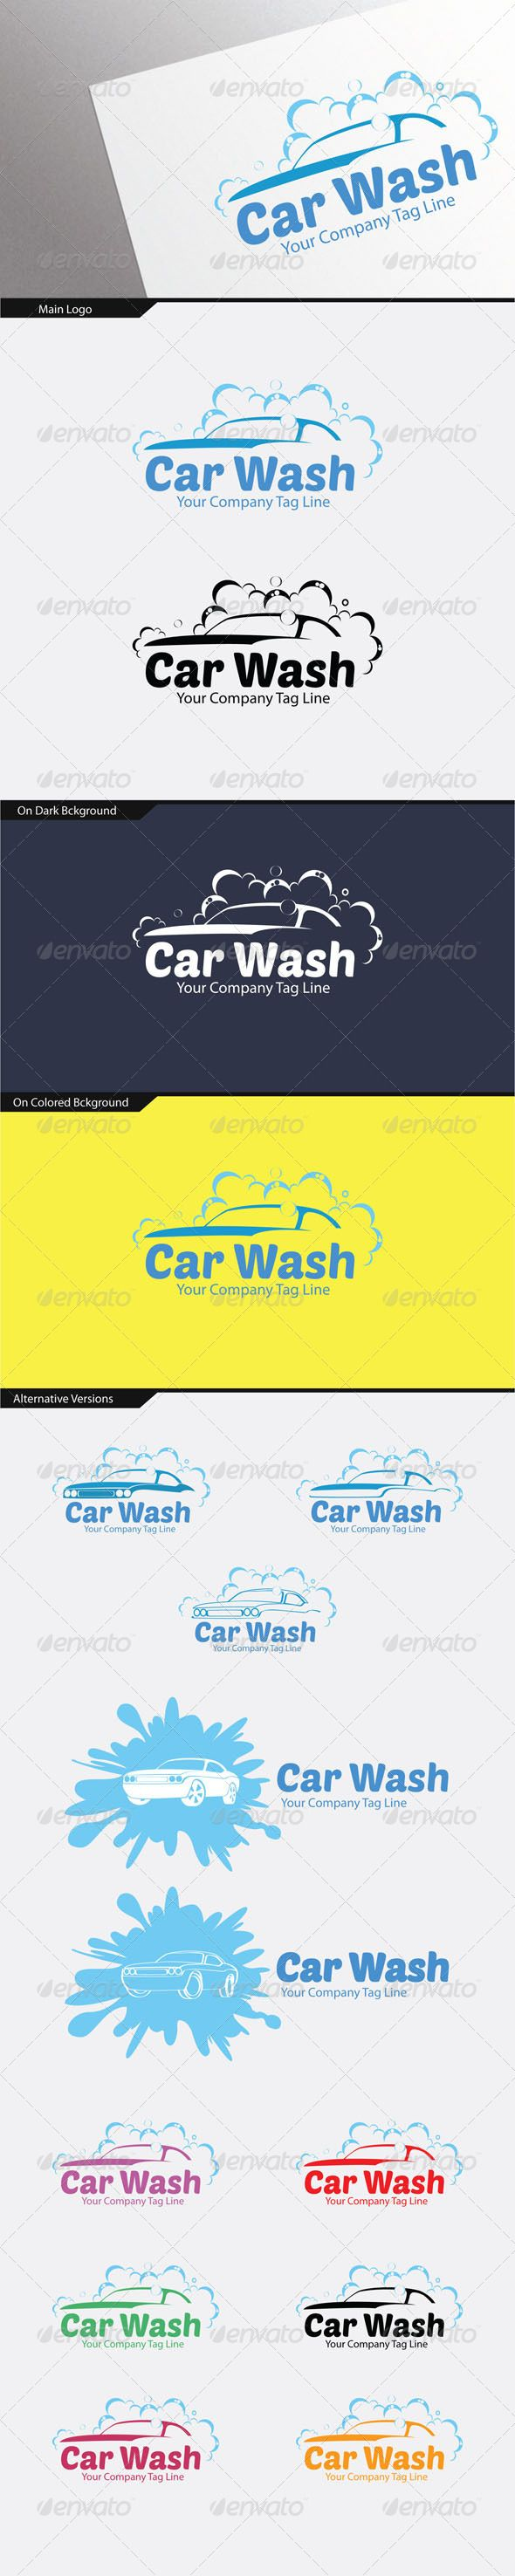 Car Wash Logo (14 Variations)